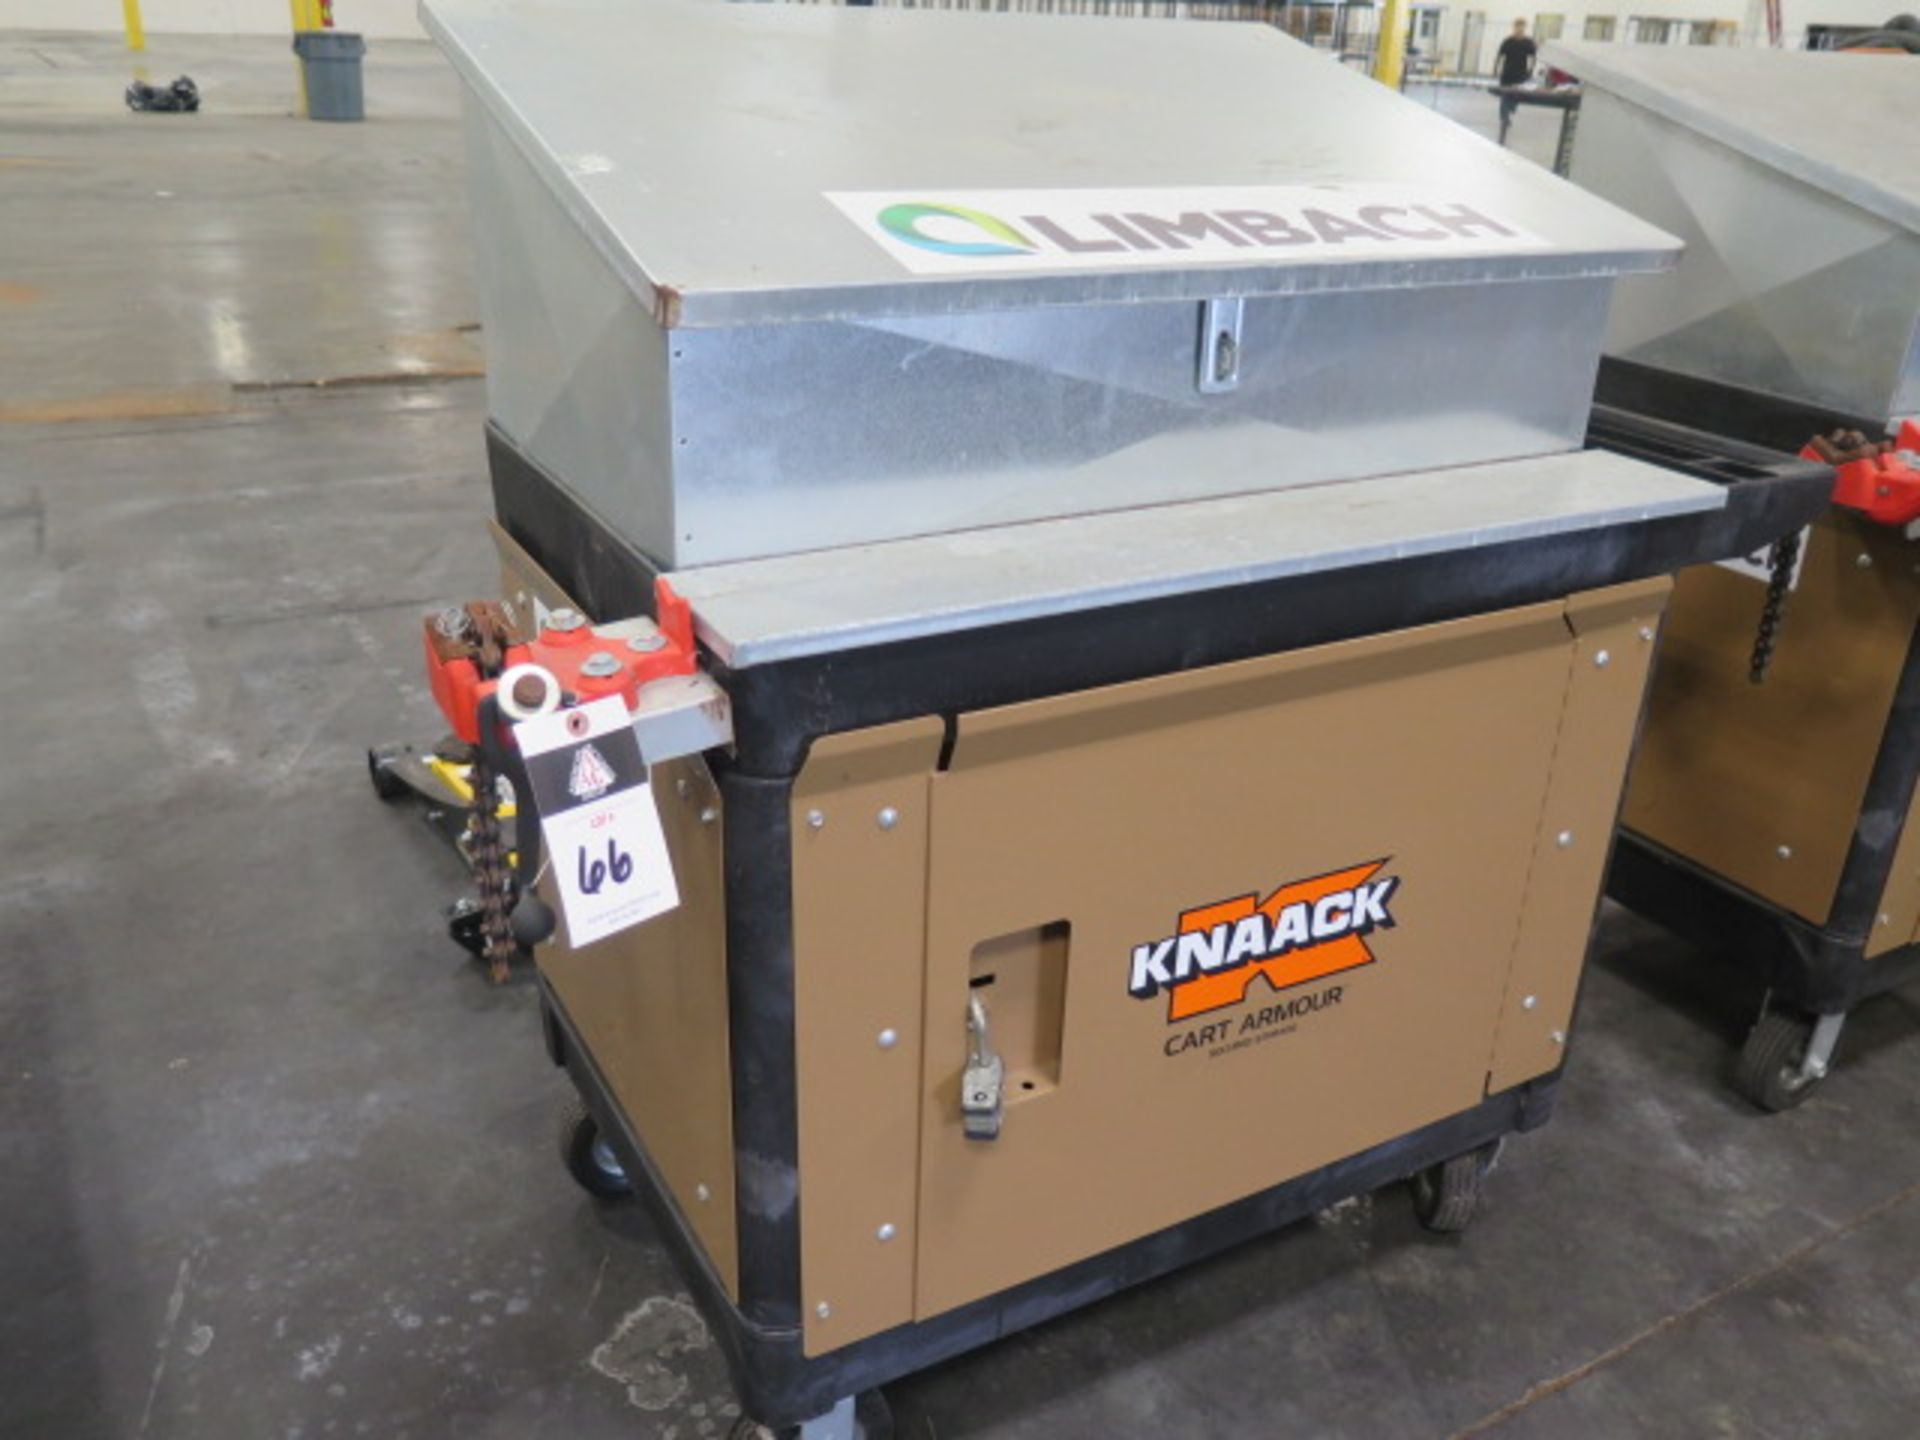 """Knaack """"Cart Armour"""" Job Cart w/ Top Box and Ridgid Pipe Vise (SOLD AS-IS - NO WARRANTY) - Image 2 of 7"""